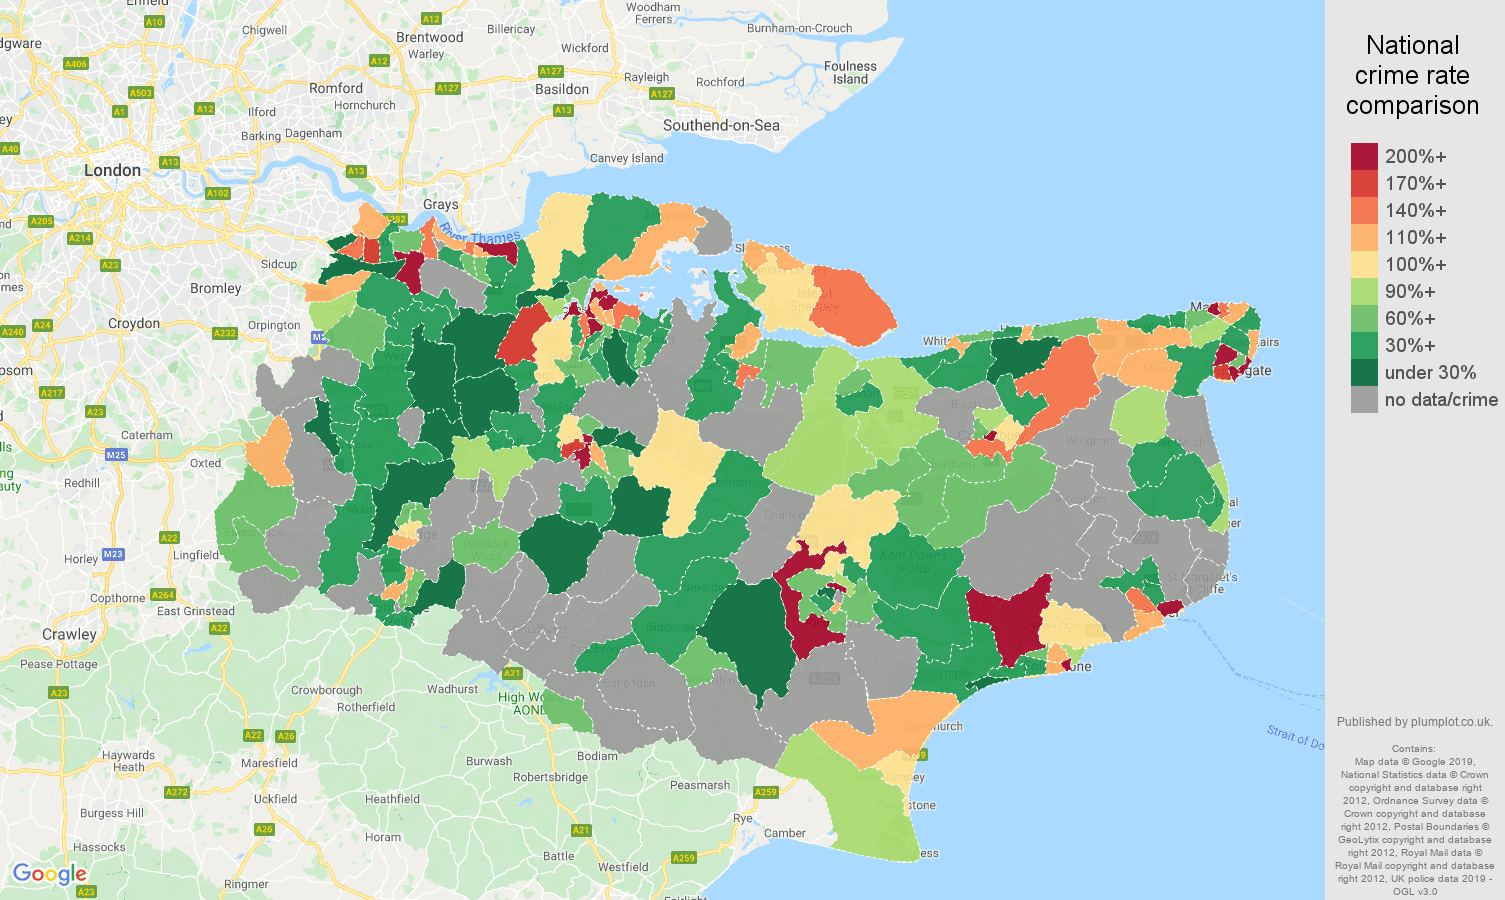 Kent possession of weapons crime rate comparison map